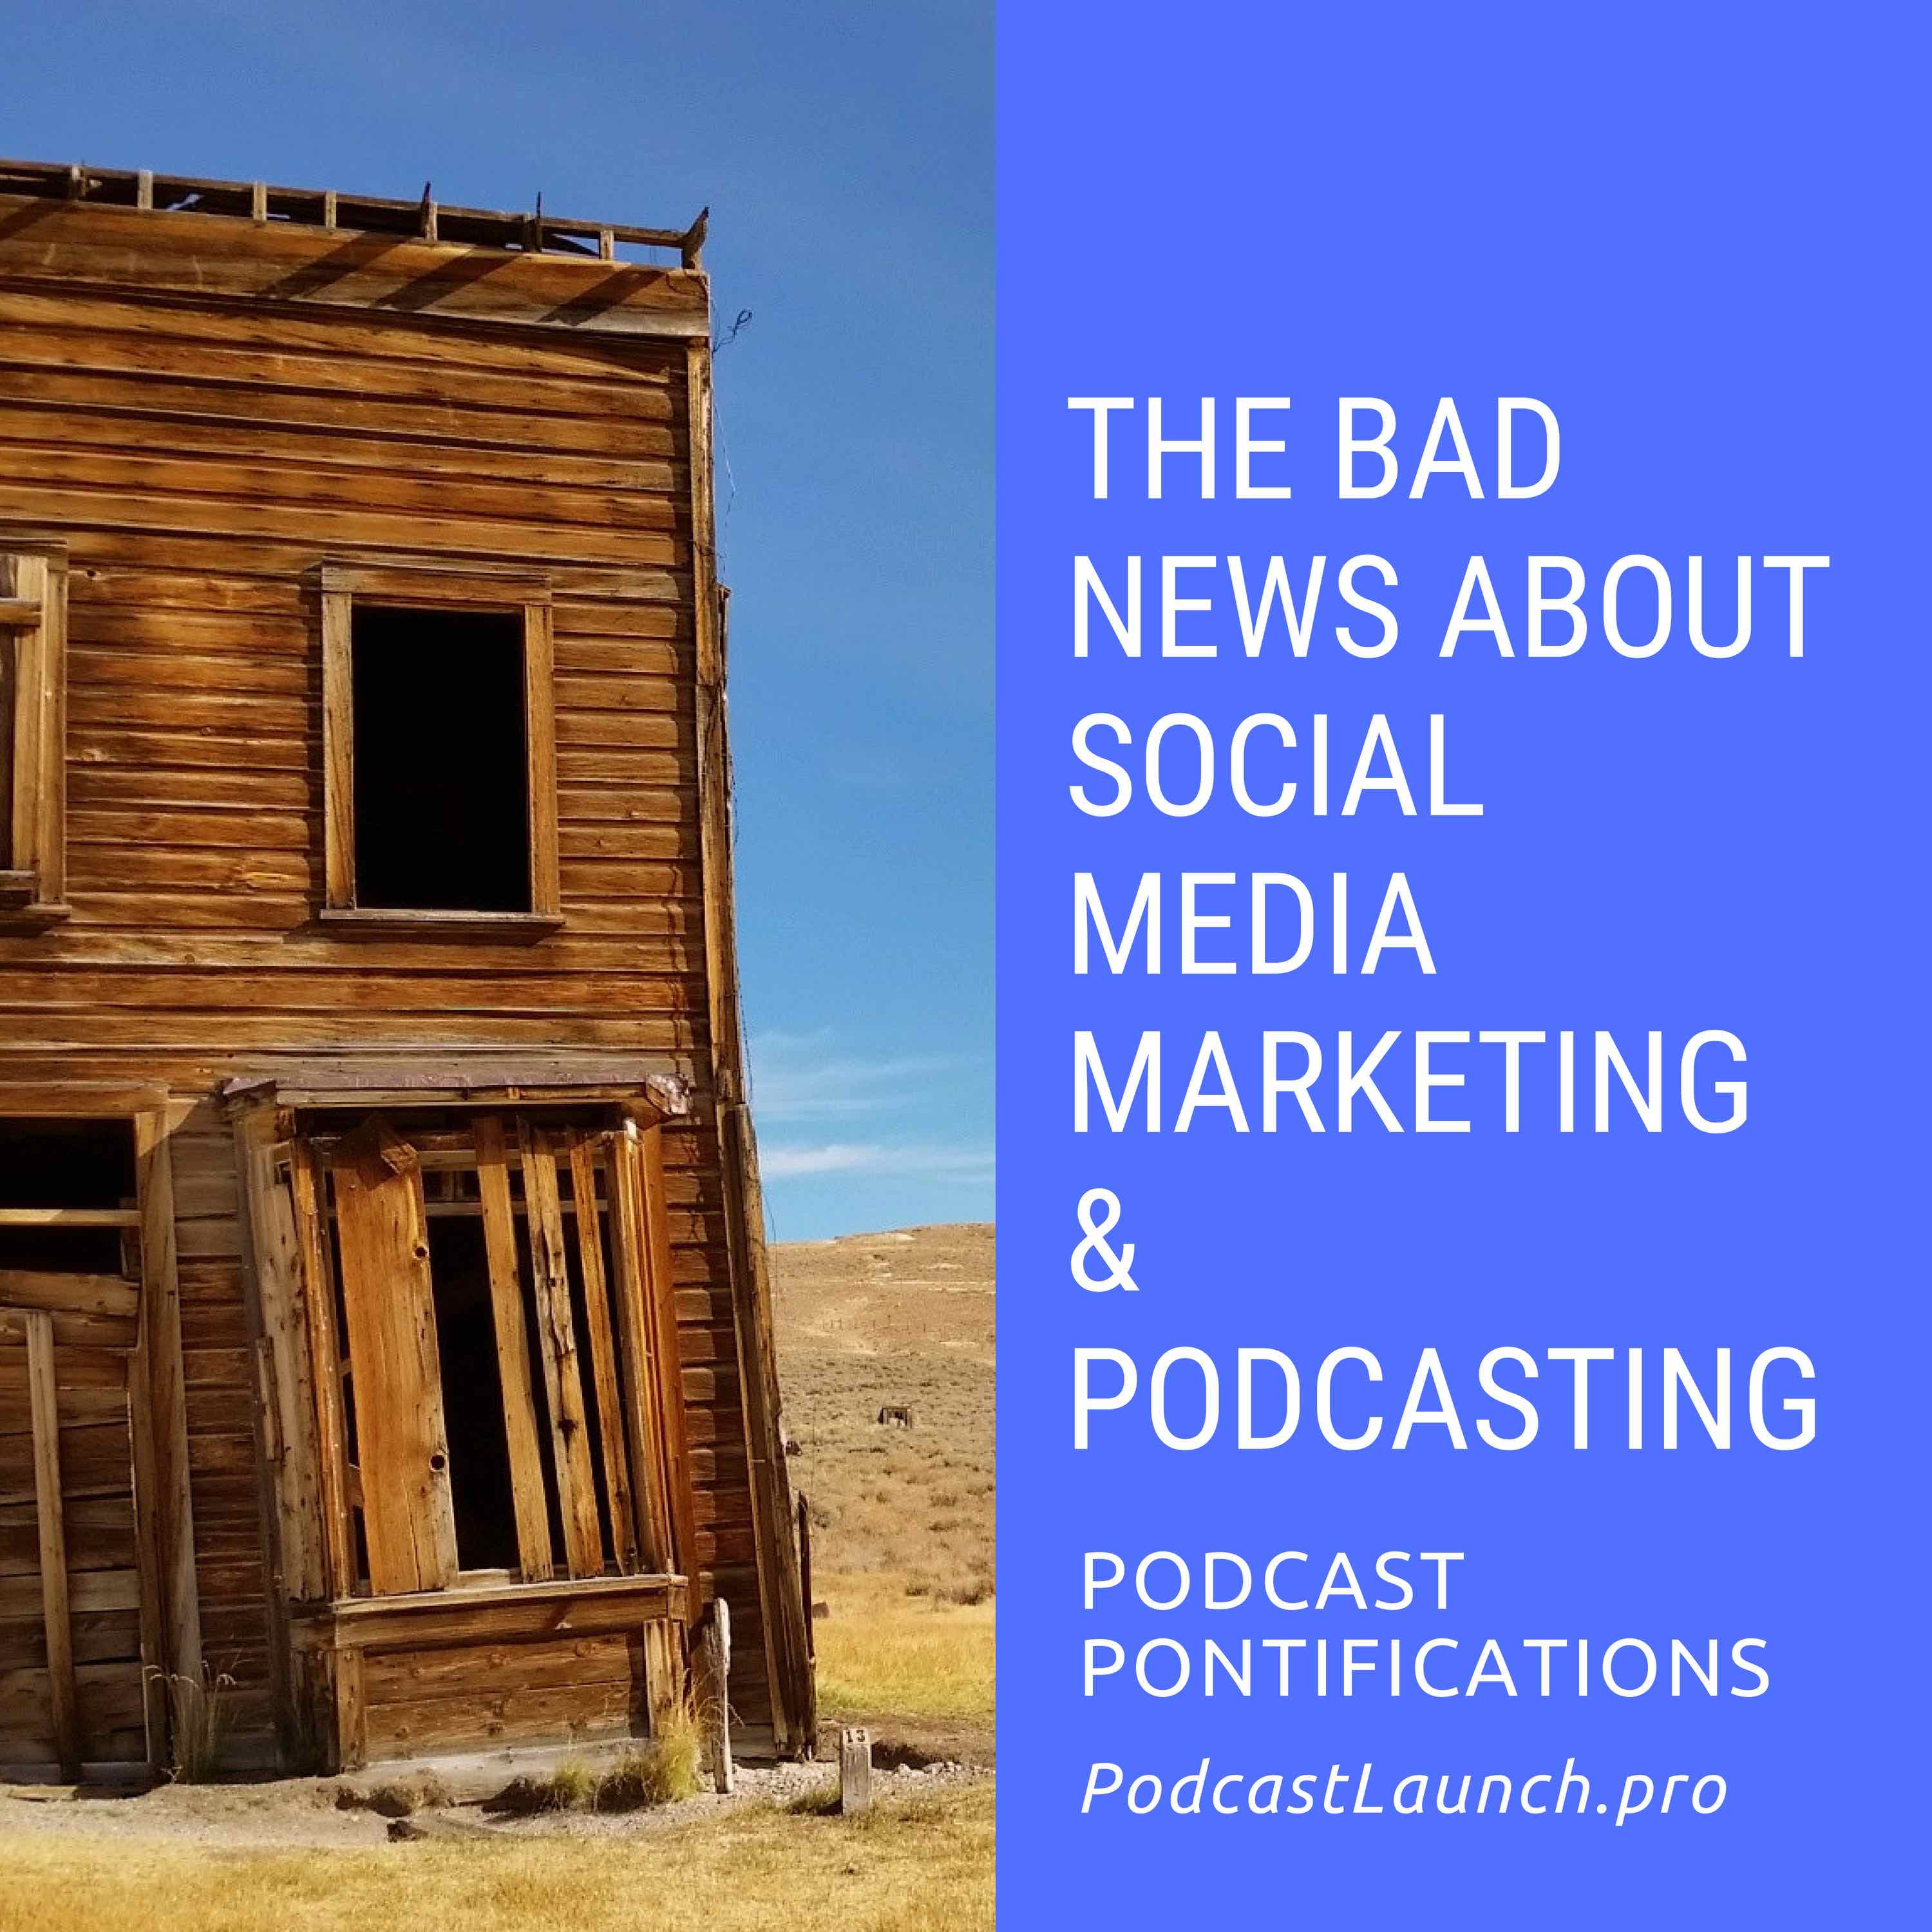 The Bad News About Social Media Marketing & Podcasting